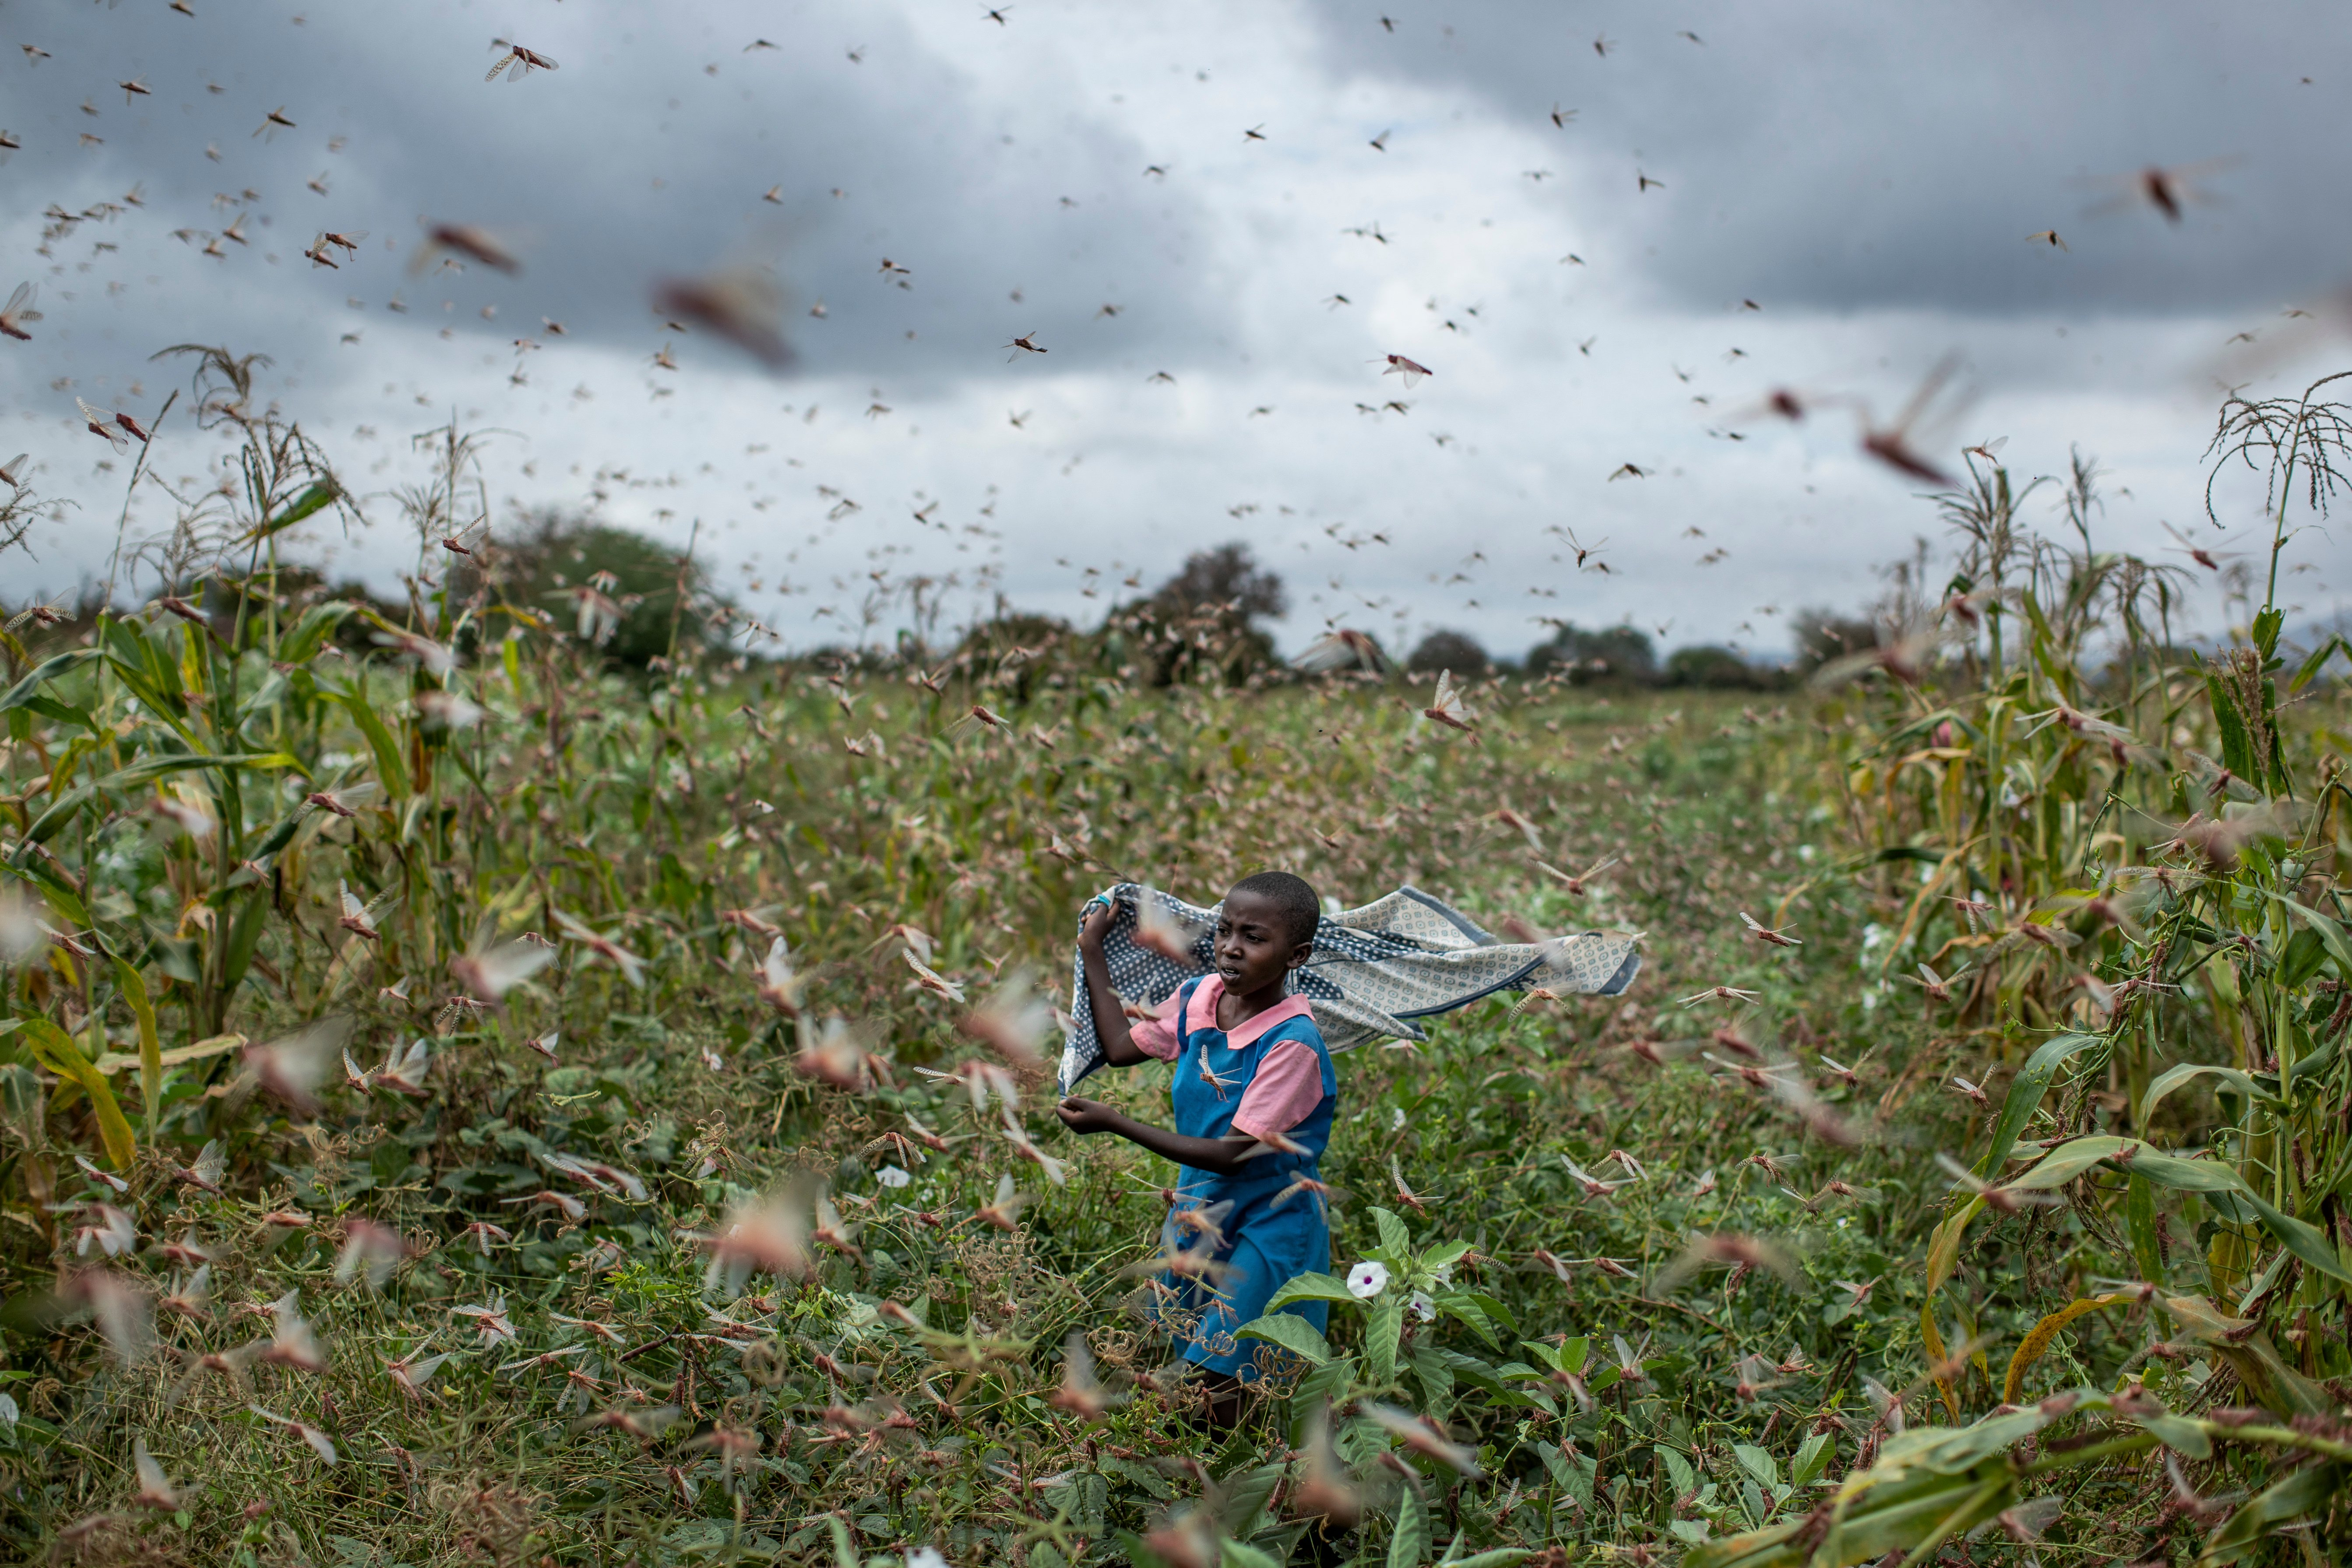 UN warns of new locust swarms forming in Africa | Daily Sabah